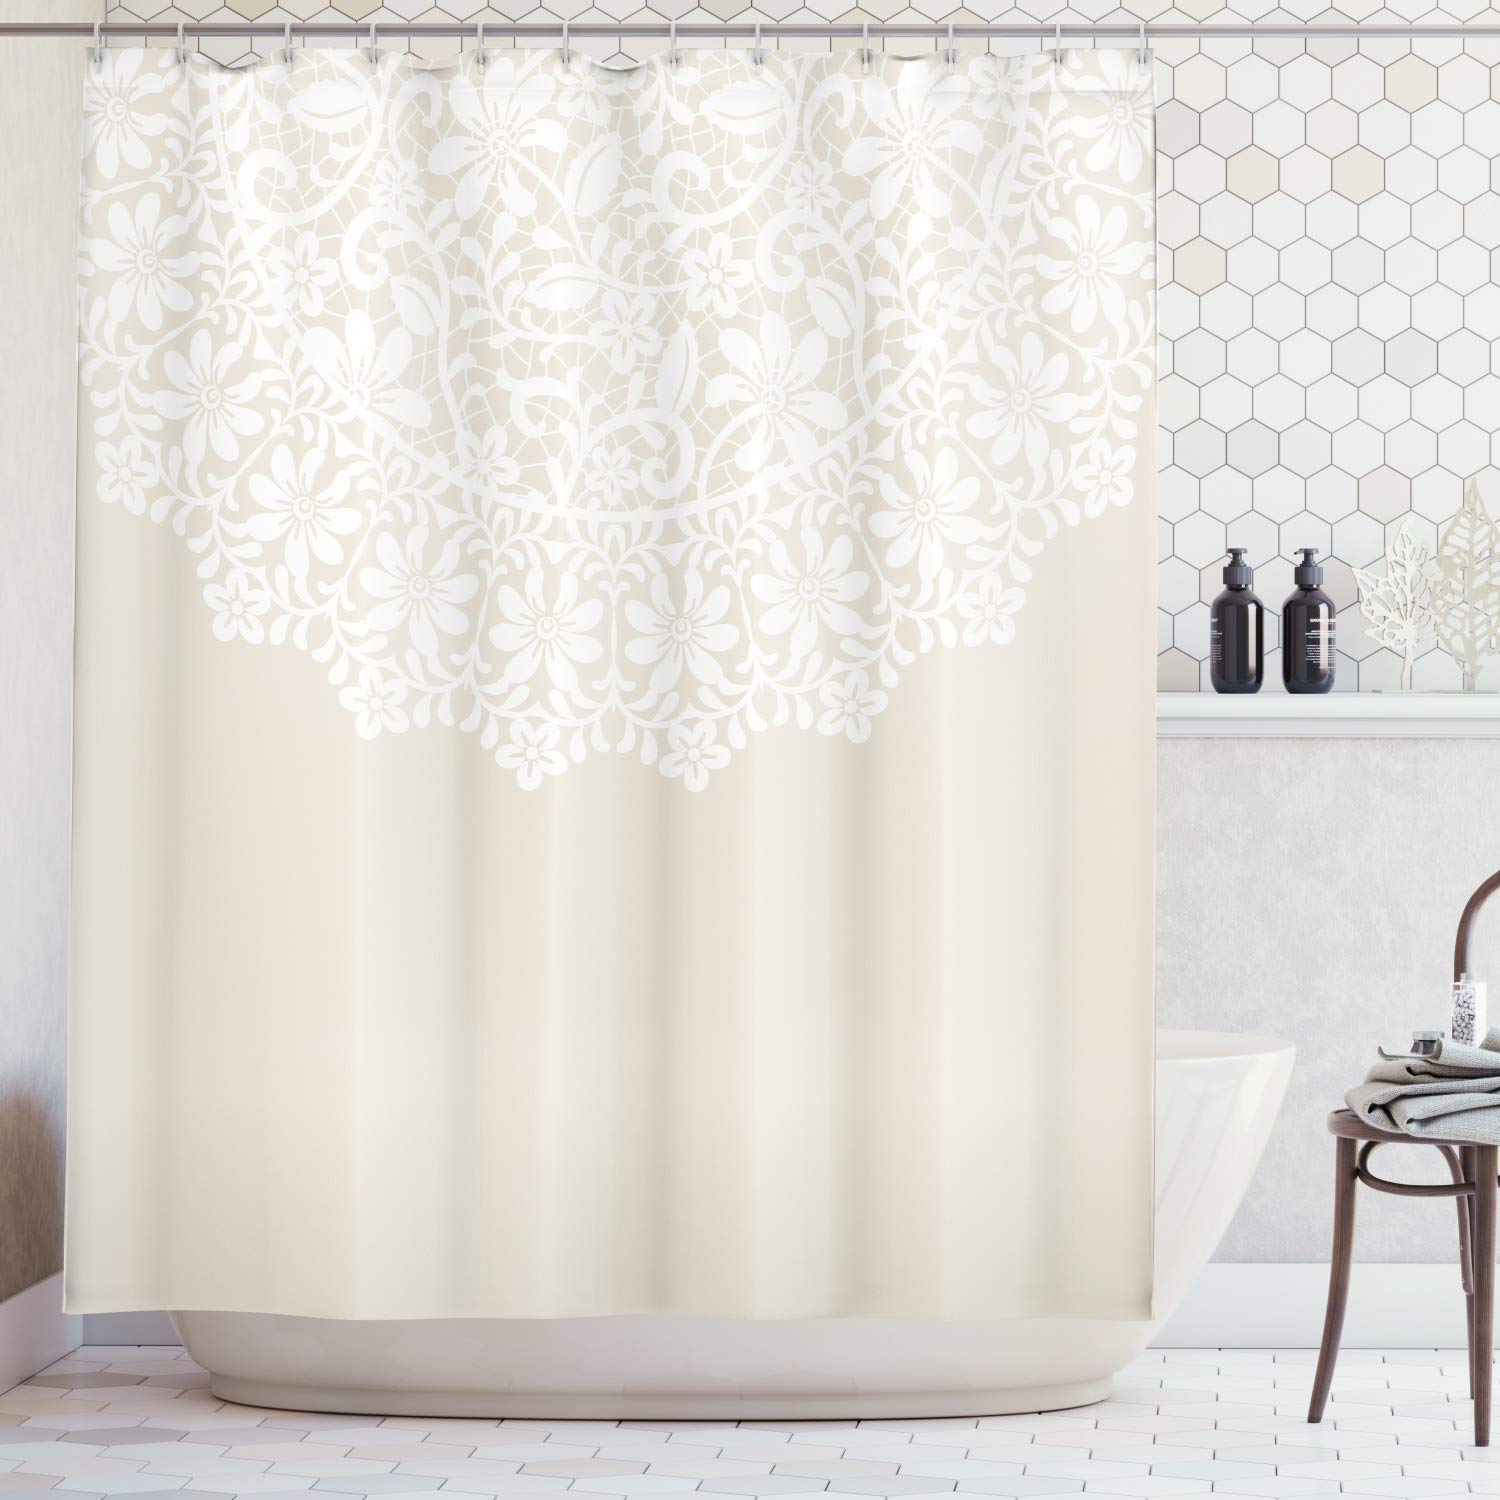 Lunarable Cream Shower Curtain, Mandala Inspired Round Motif in Half Ornamental Flowers Graphic Lace Border Print, Fabric Bathroom Decor Set with Hooks, 105 Inches Extra Wide, Tan White